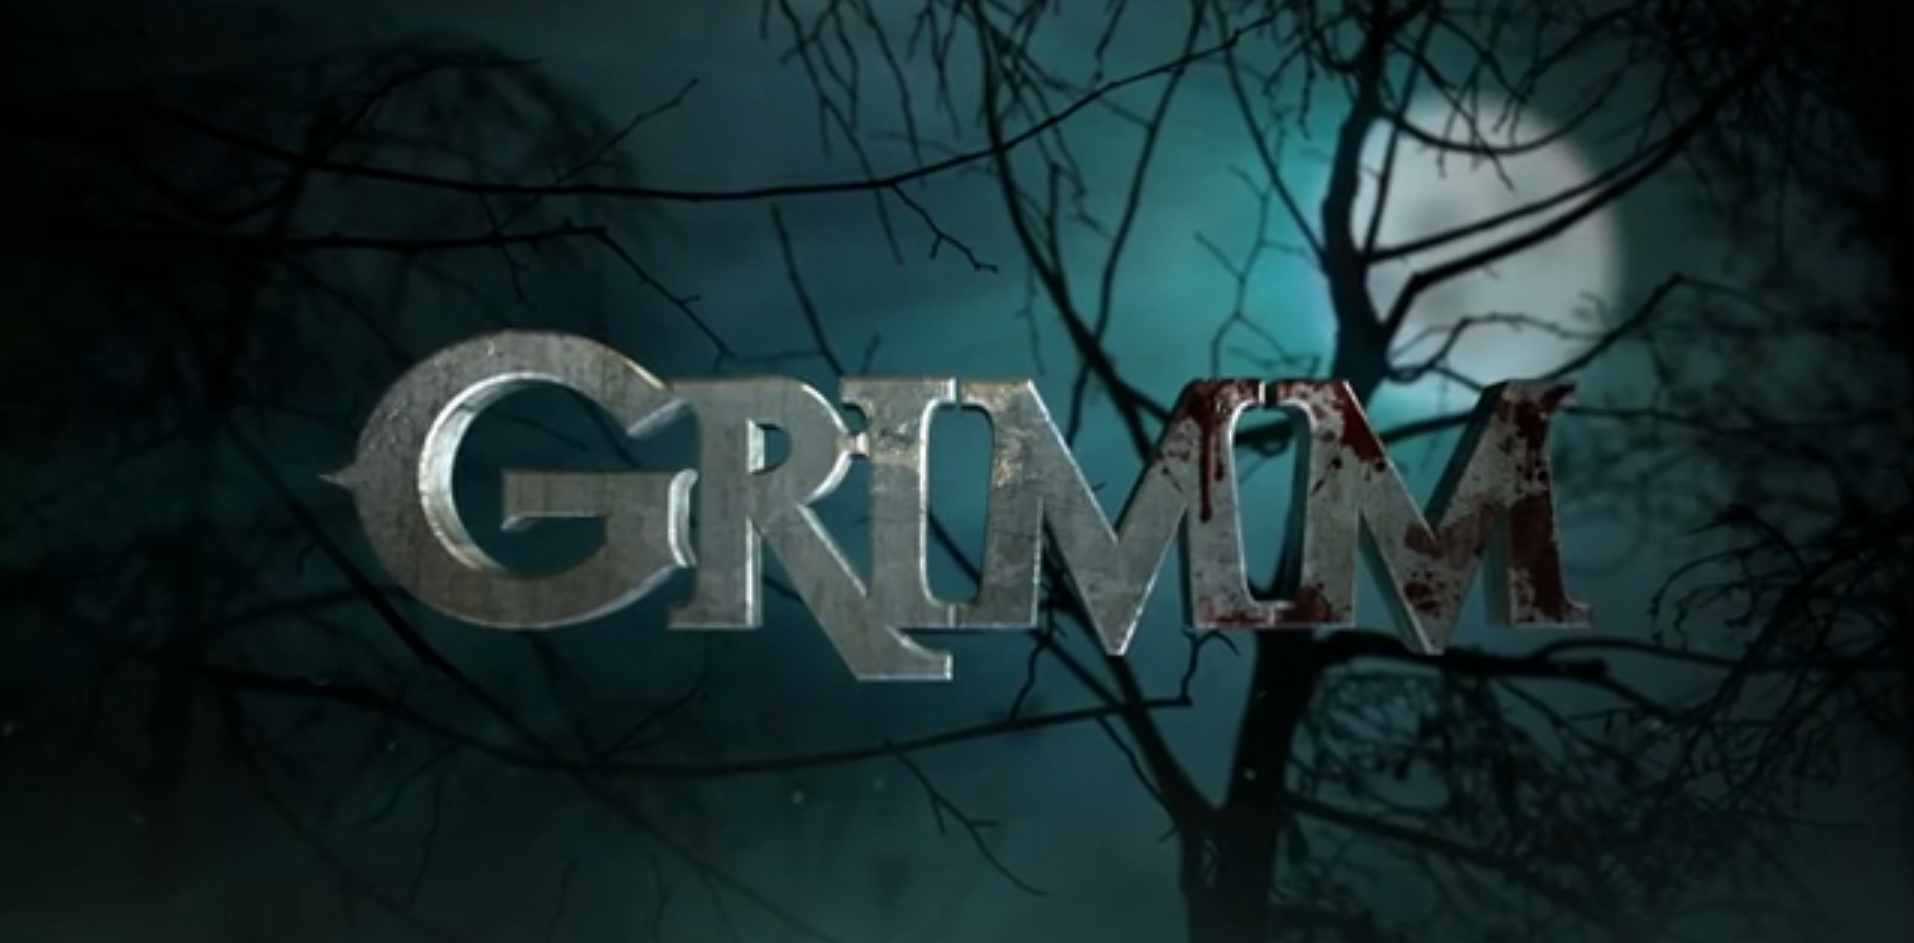 Grimm finally returns on Friday, March 8th